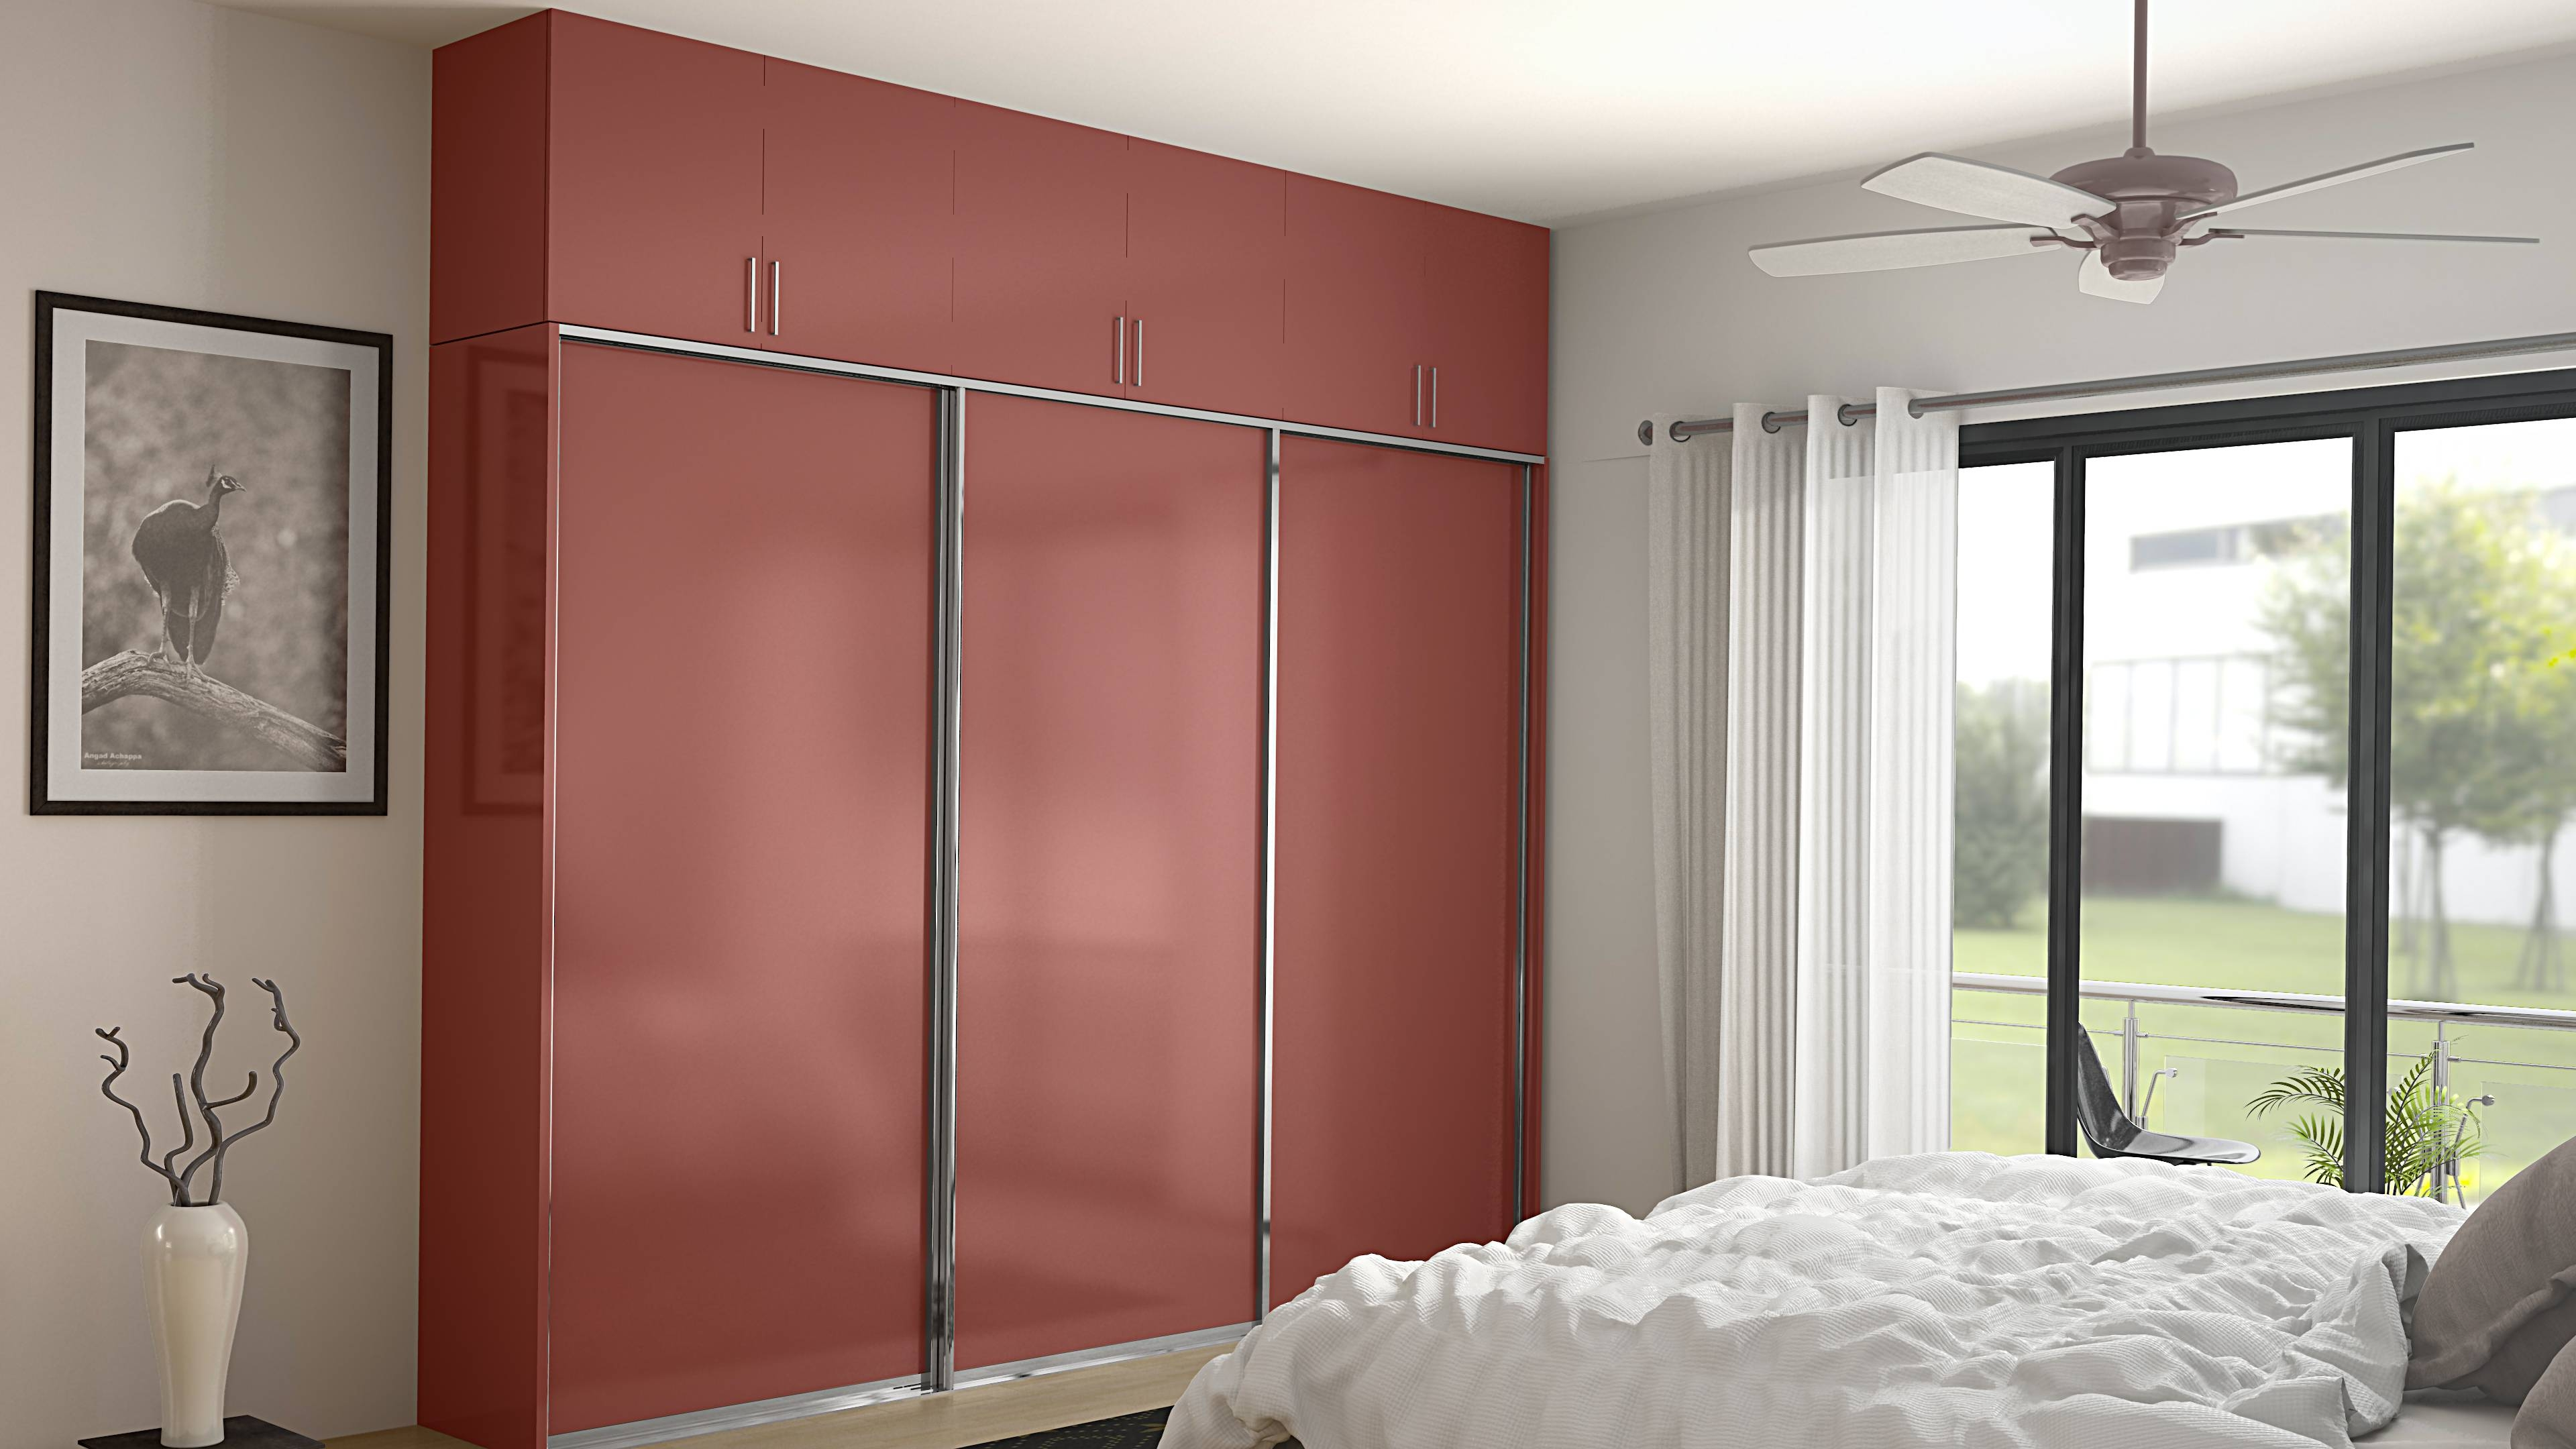 6 Trendy Wardrobe Door Designs From Homelane - Homelane in 6 Door Wardrobes Bedroom Furniture (Image 2 of 15)